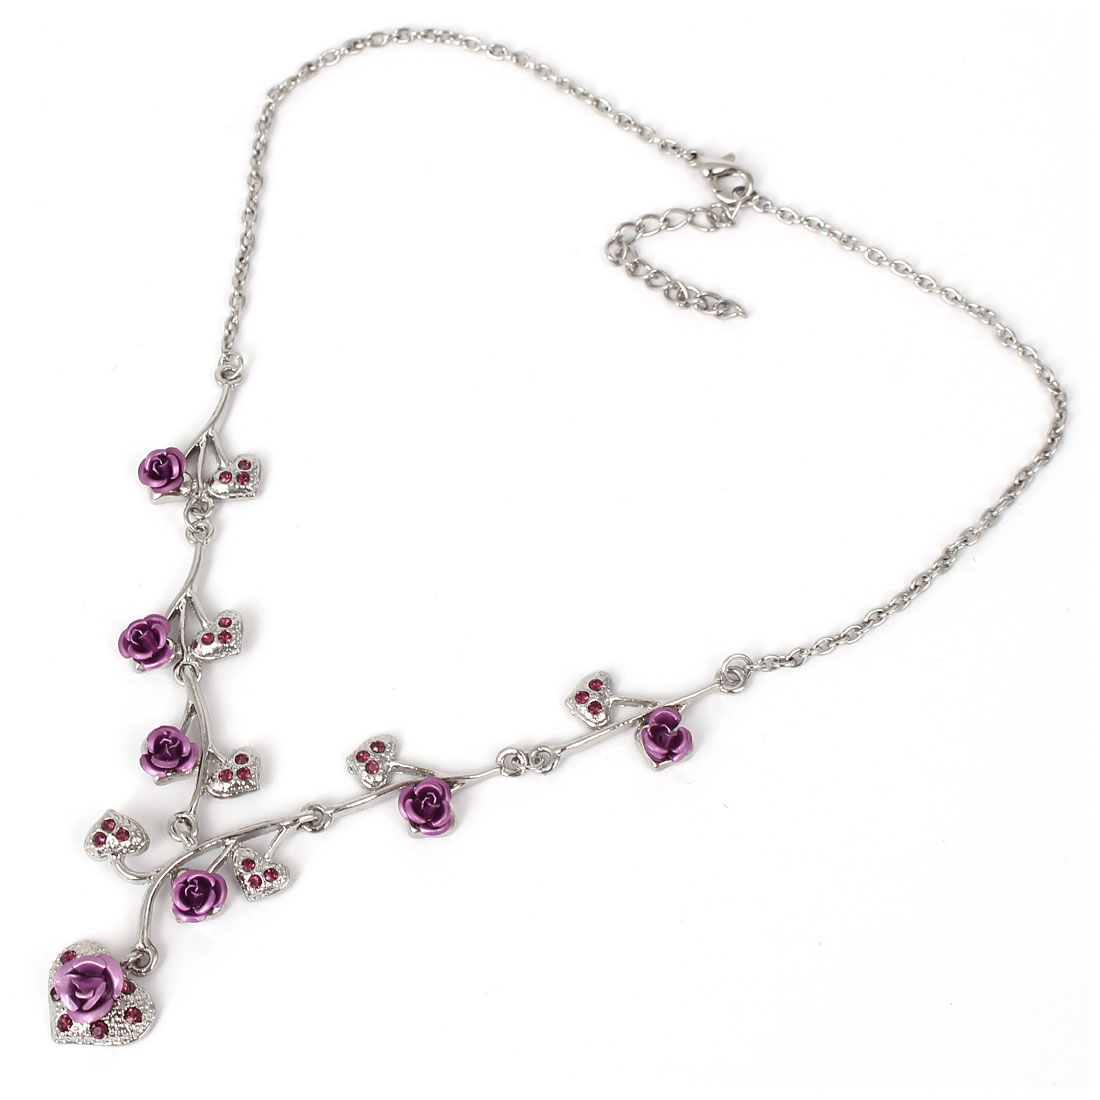 Girl Lady Fashion Jewelry Alloy Rose Flower Crystal Heart Pendant Necklace Purple